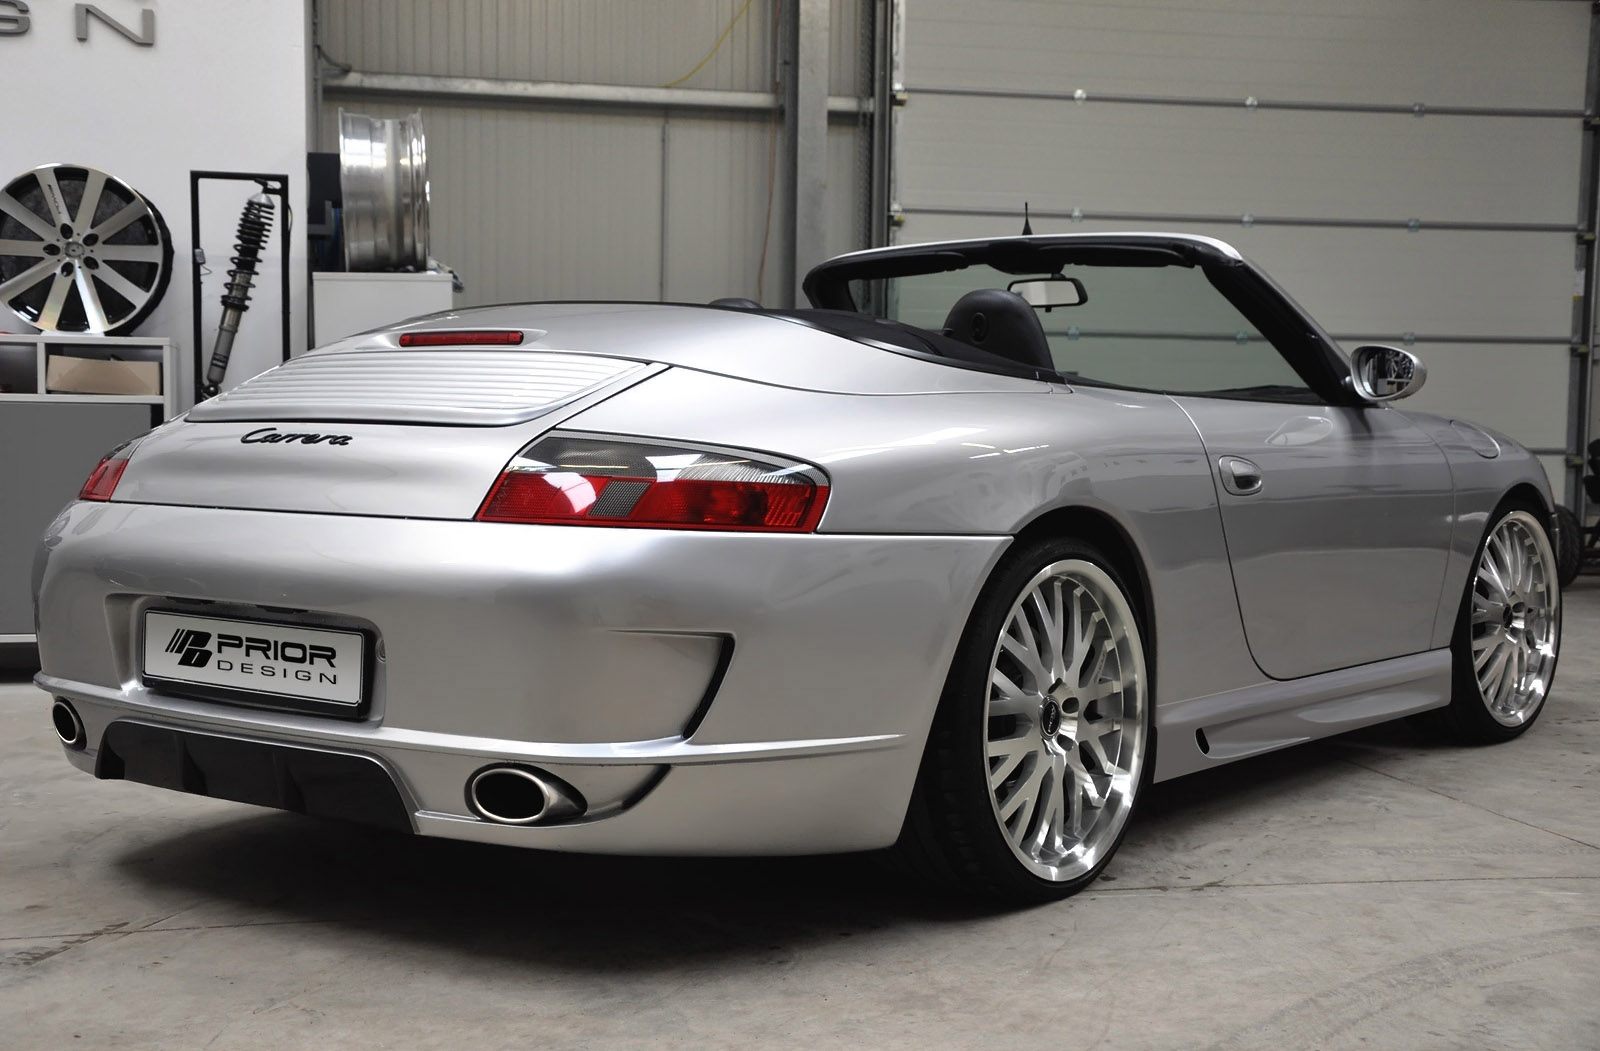 Prior-Design Porsche 996 Carrera - Picture 37128